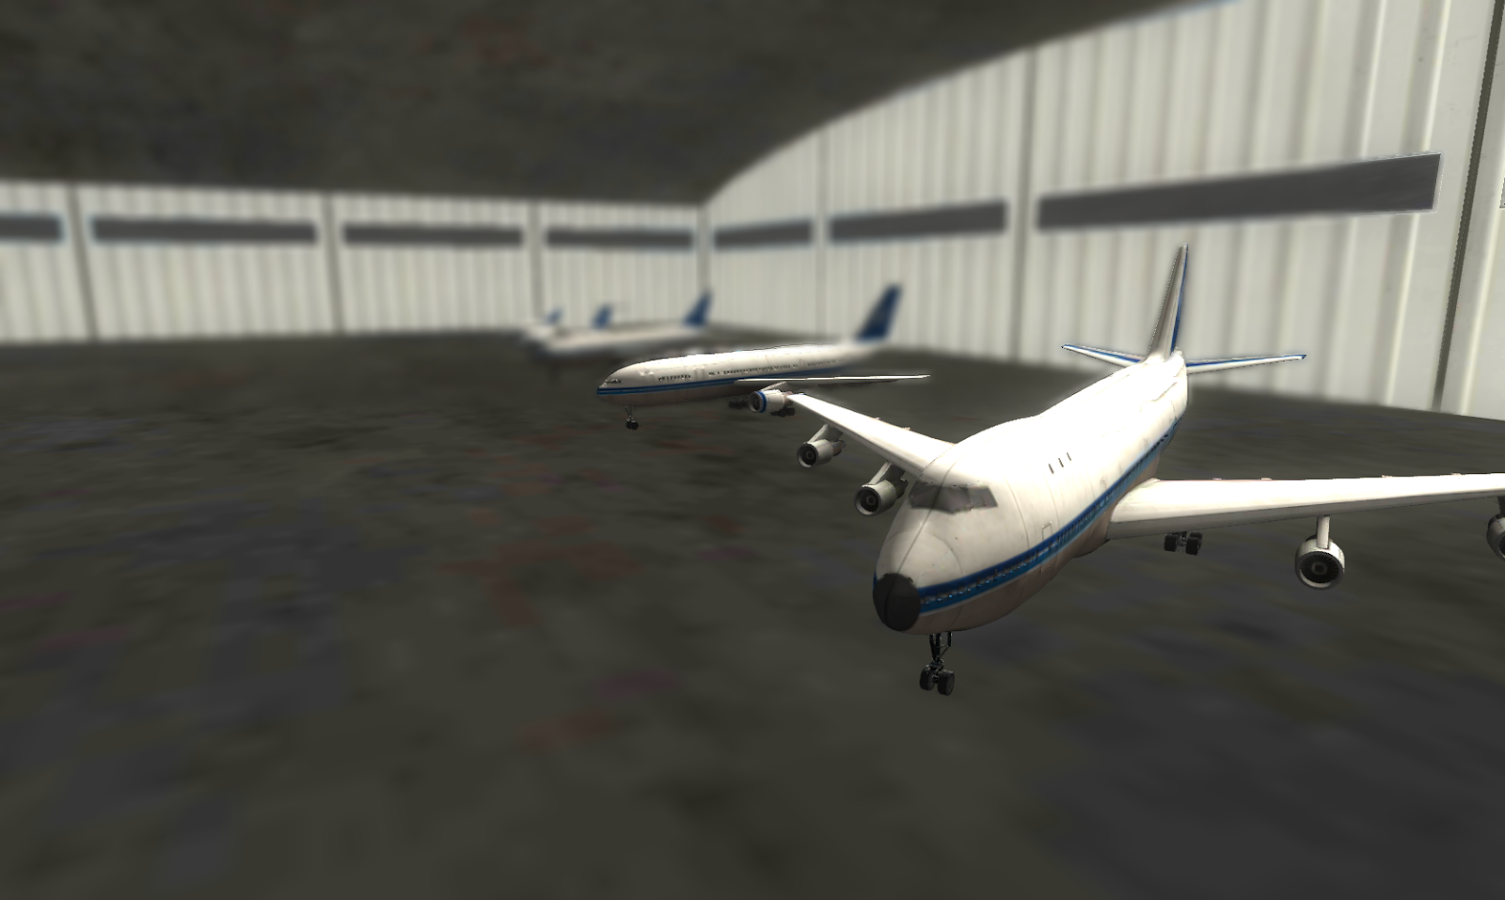 Flight Simulator: My Plane 3D - screenshot